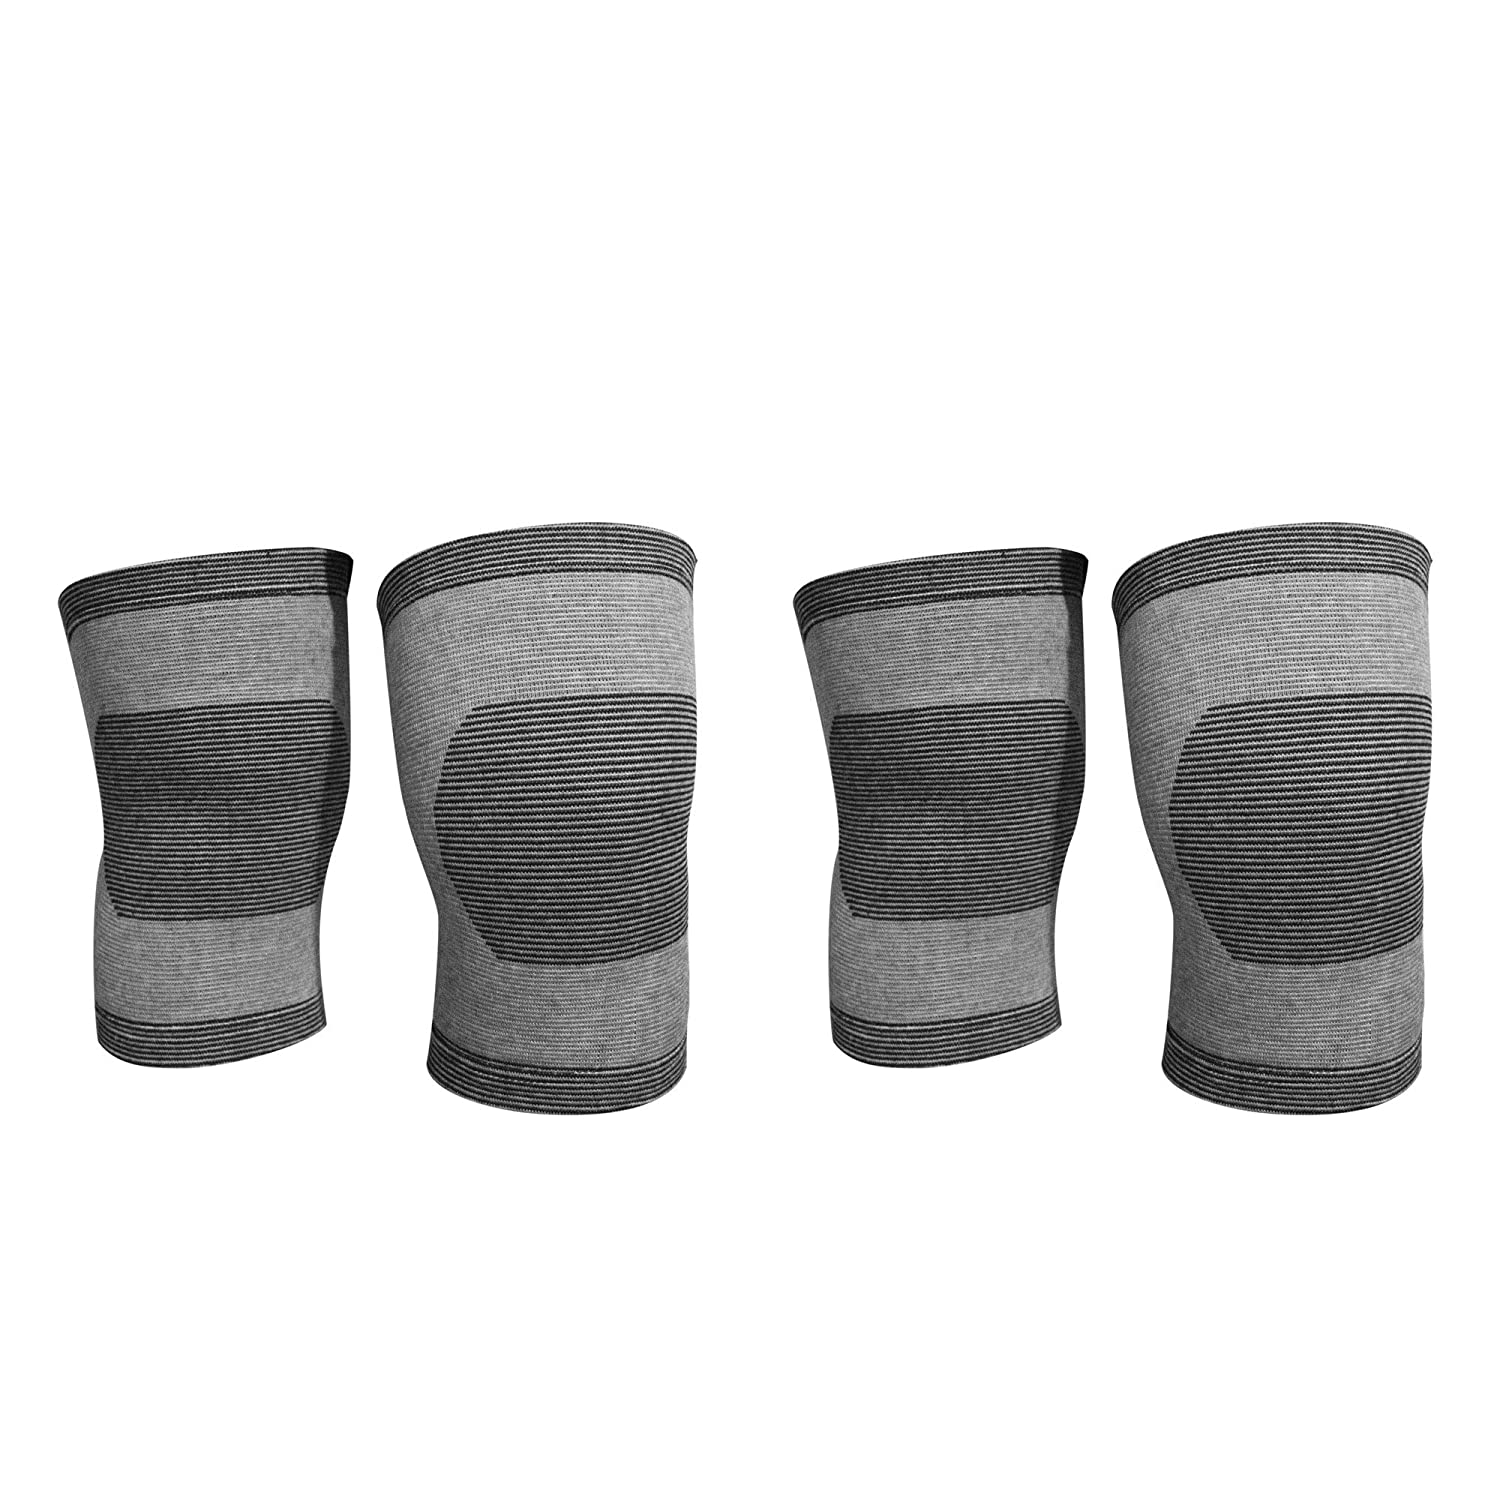 74049486bba8 Plus Z (Pack of 4) Compression Kneepads/kneelet Sleeve for Basketball,  Football, Dancing, Cheerleading, Fitness, Gym. Arthritis, Meniscus Tear,  Joint Pain ...